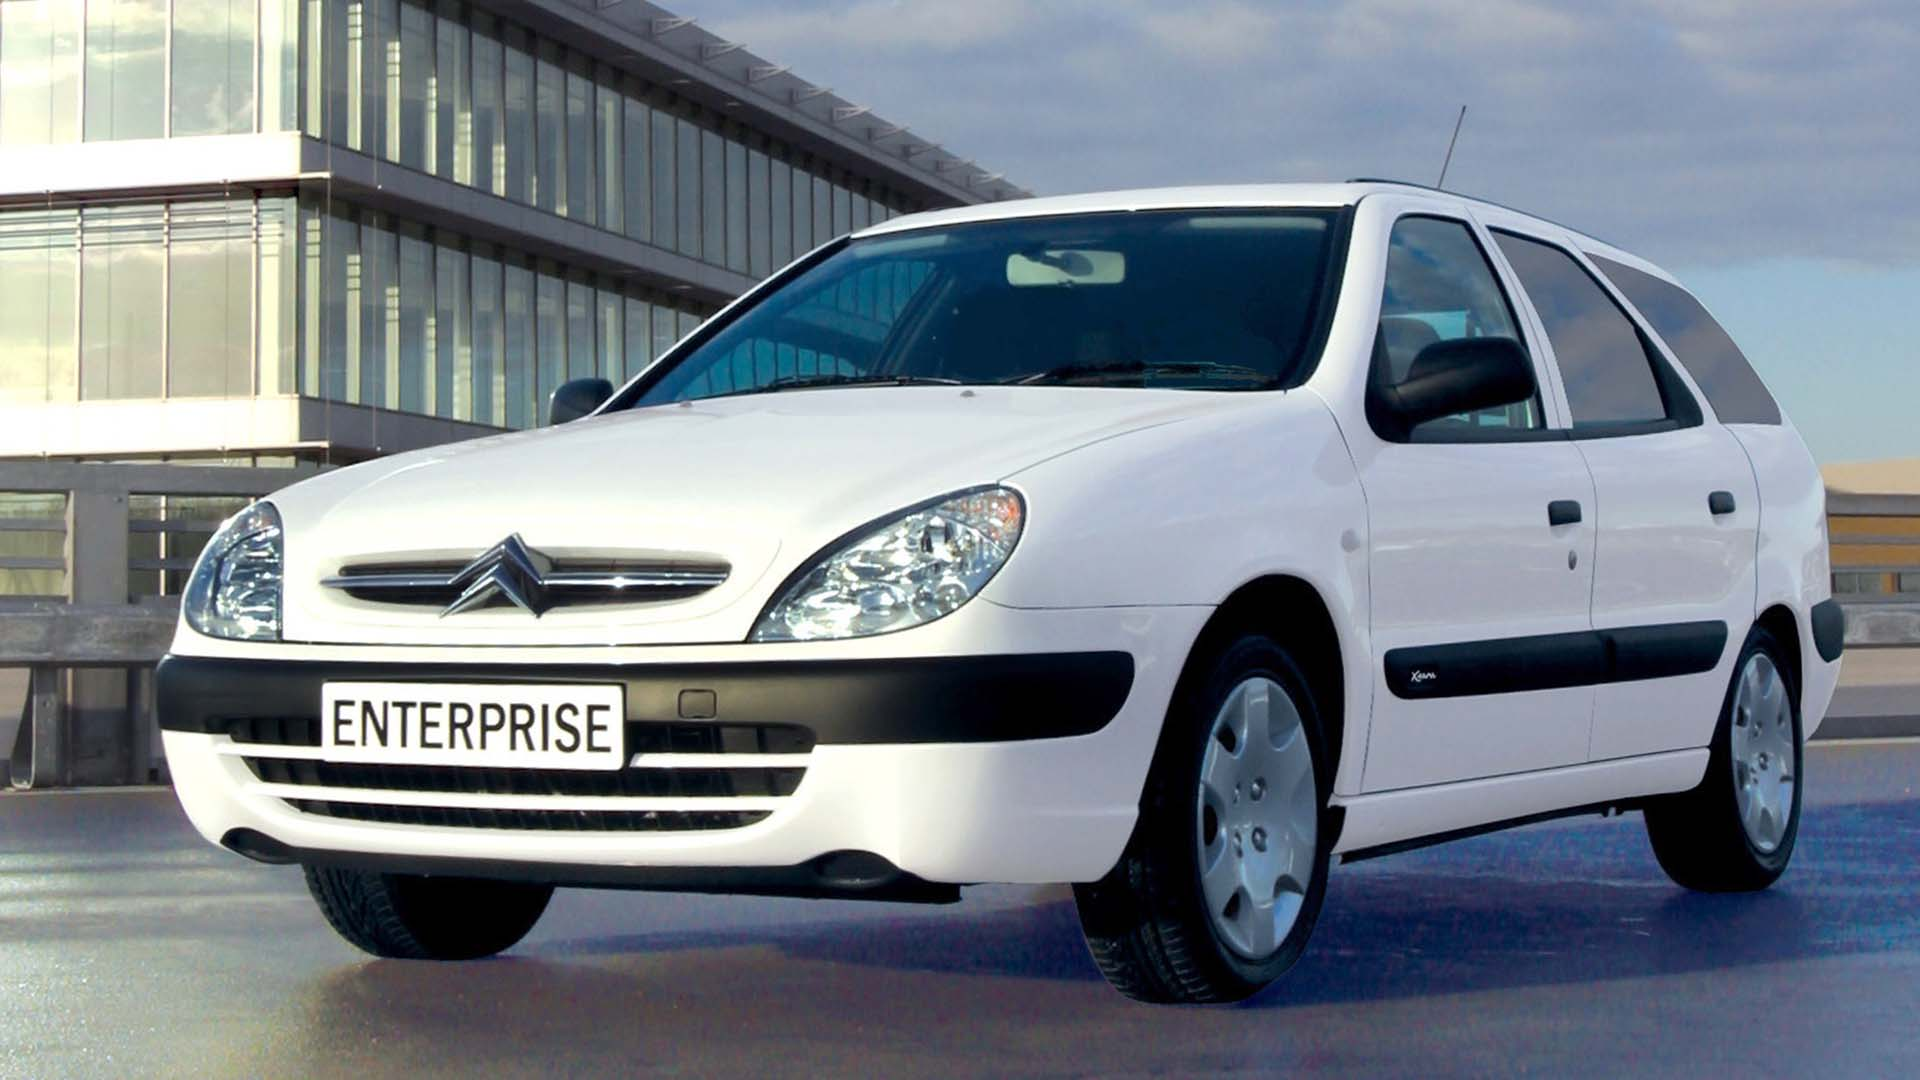 Citroen Xsara Enterprise